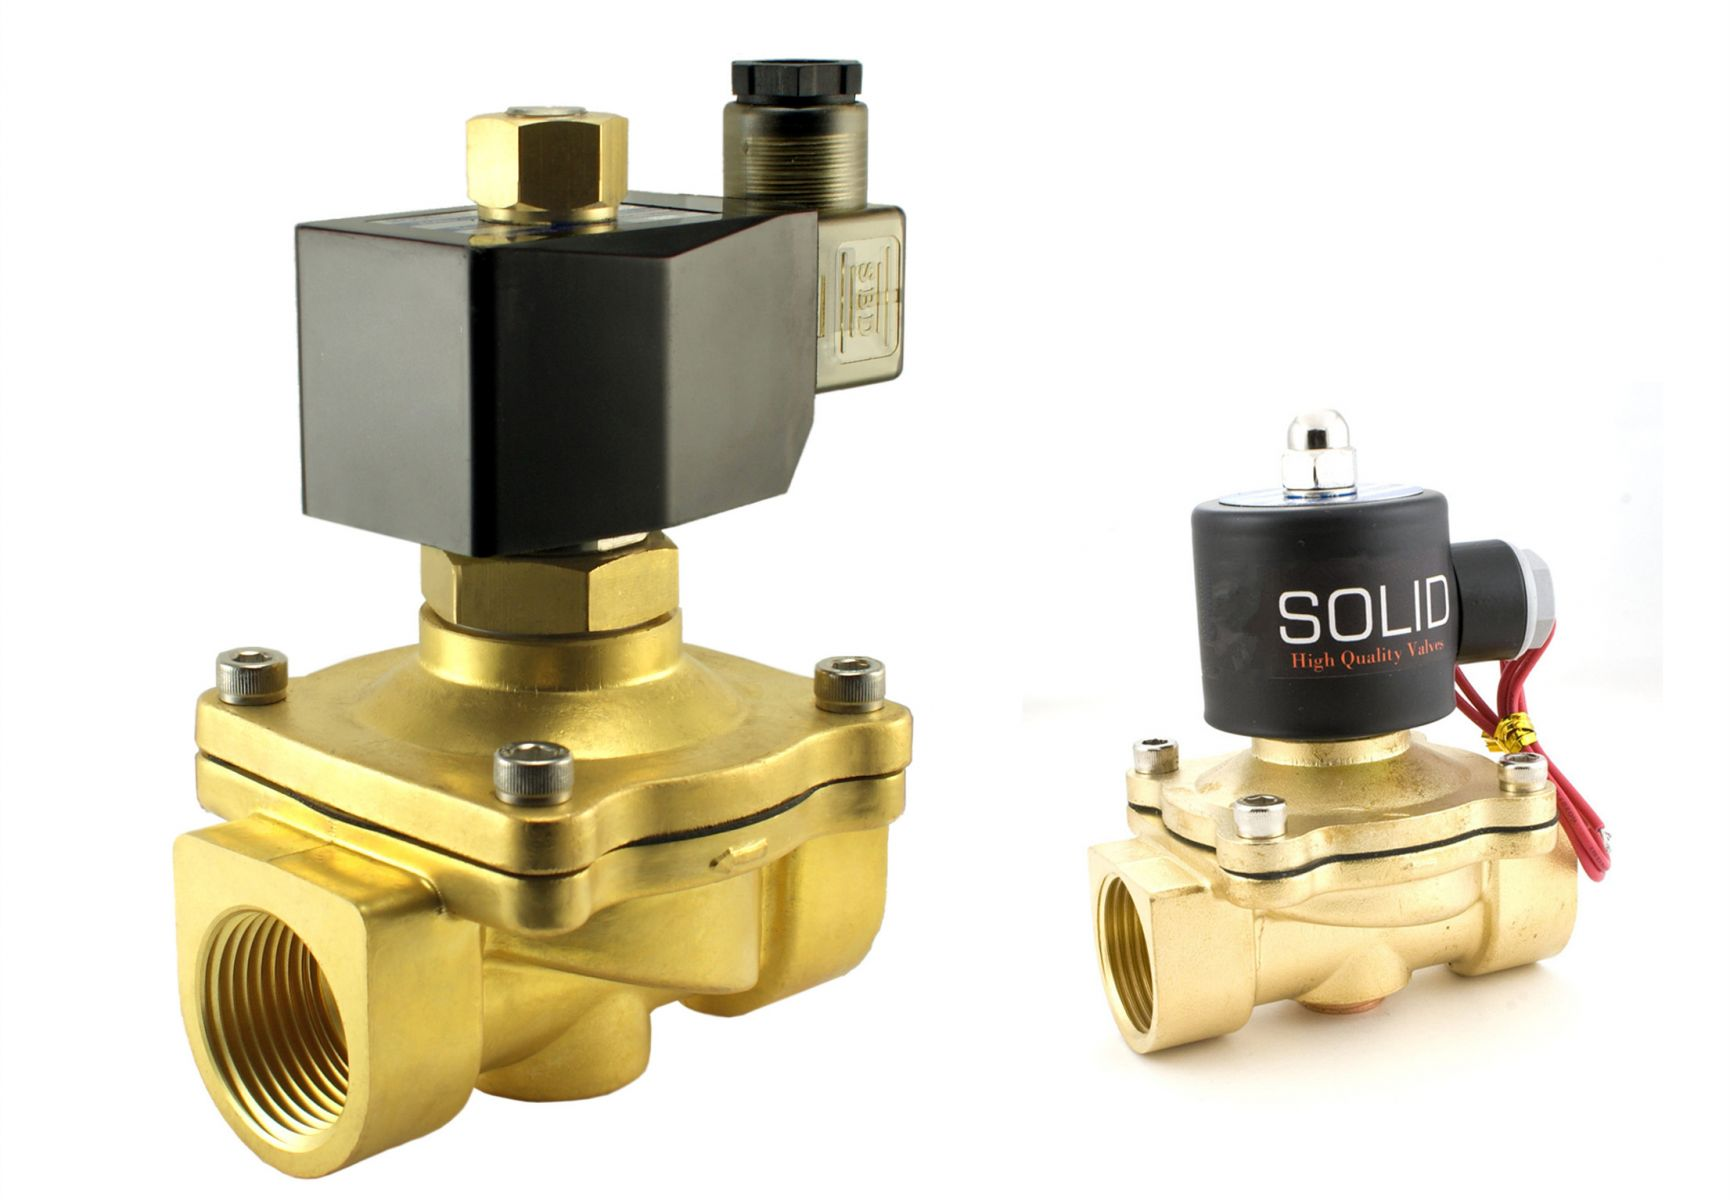 Difference between Solenoid Valves and Electric Valves